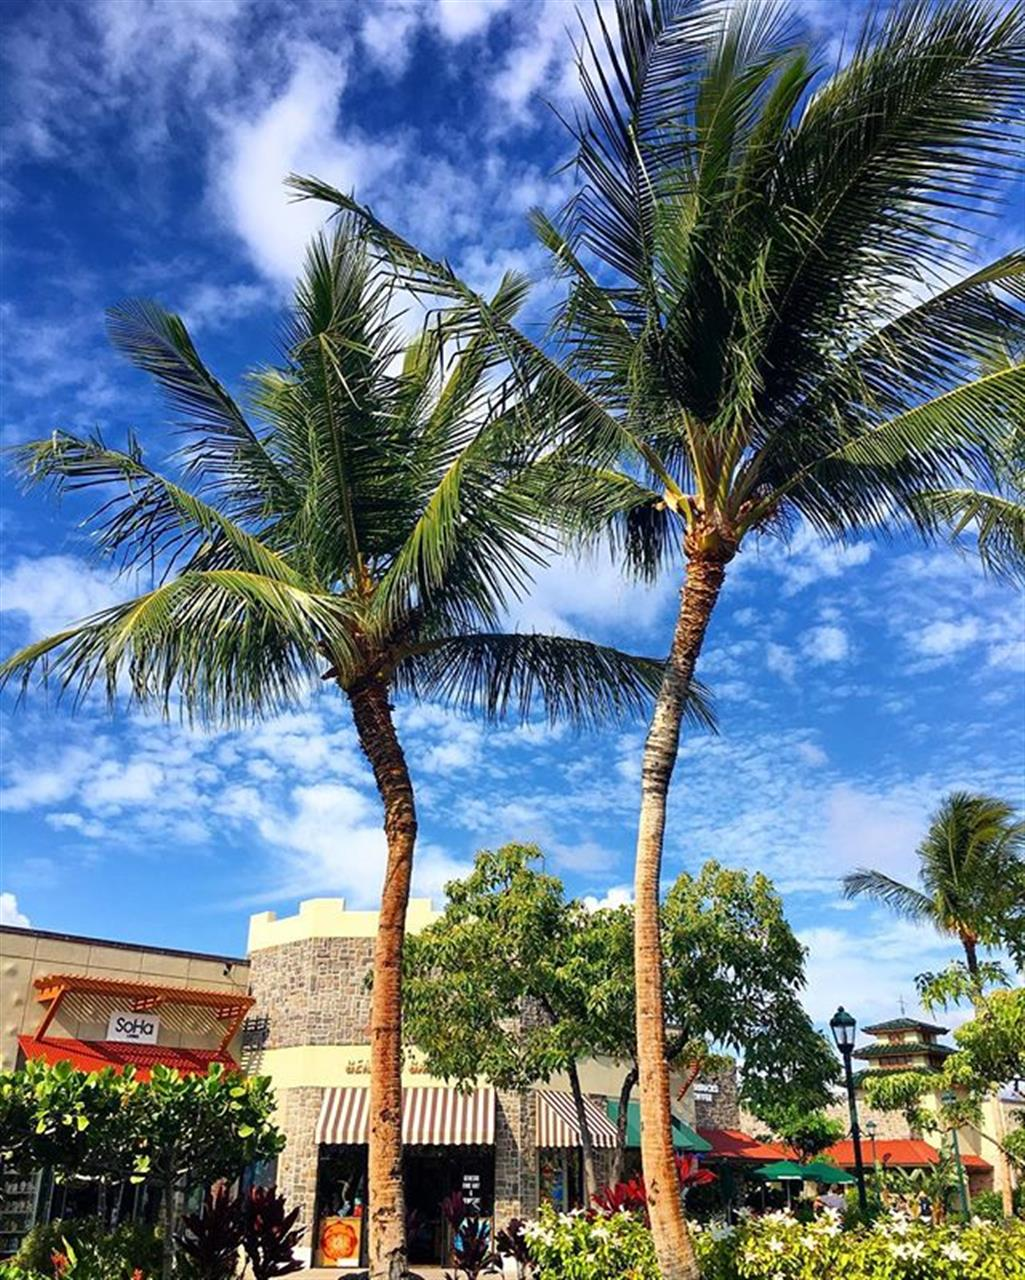 There's something about a #palmtree...has such a calming effect over me! #queensmarketplace #kohalacoast #waikoloa